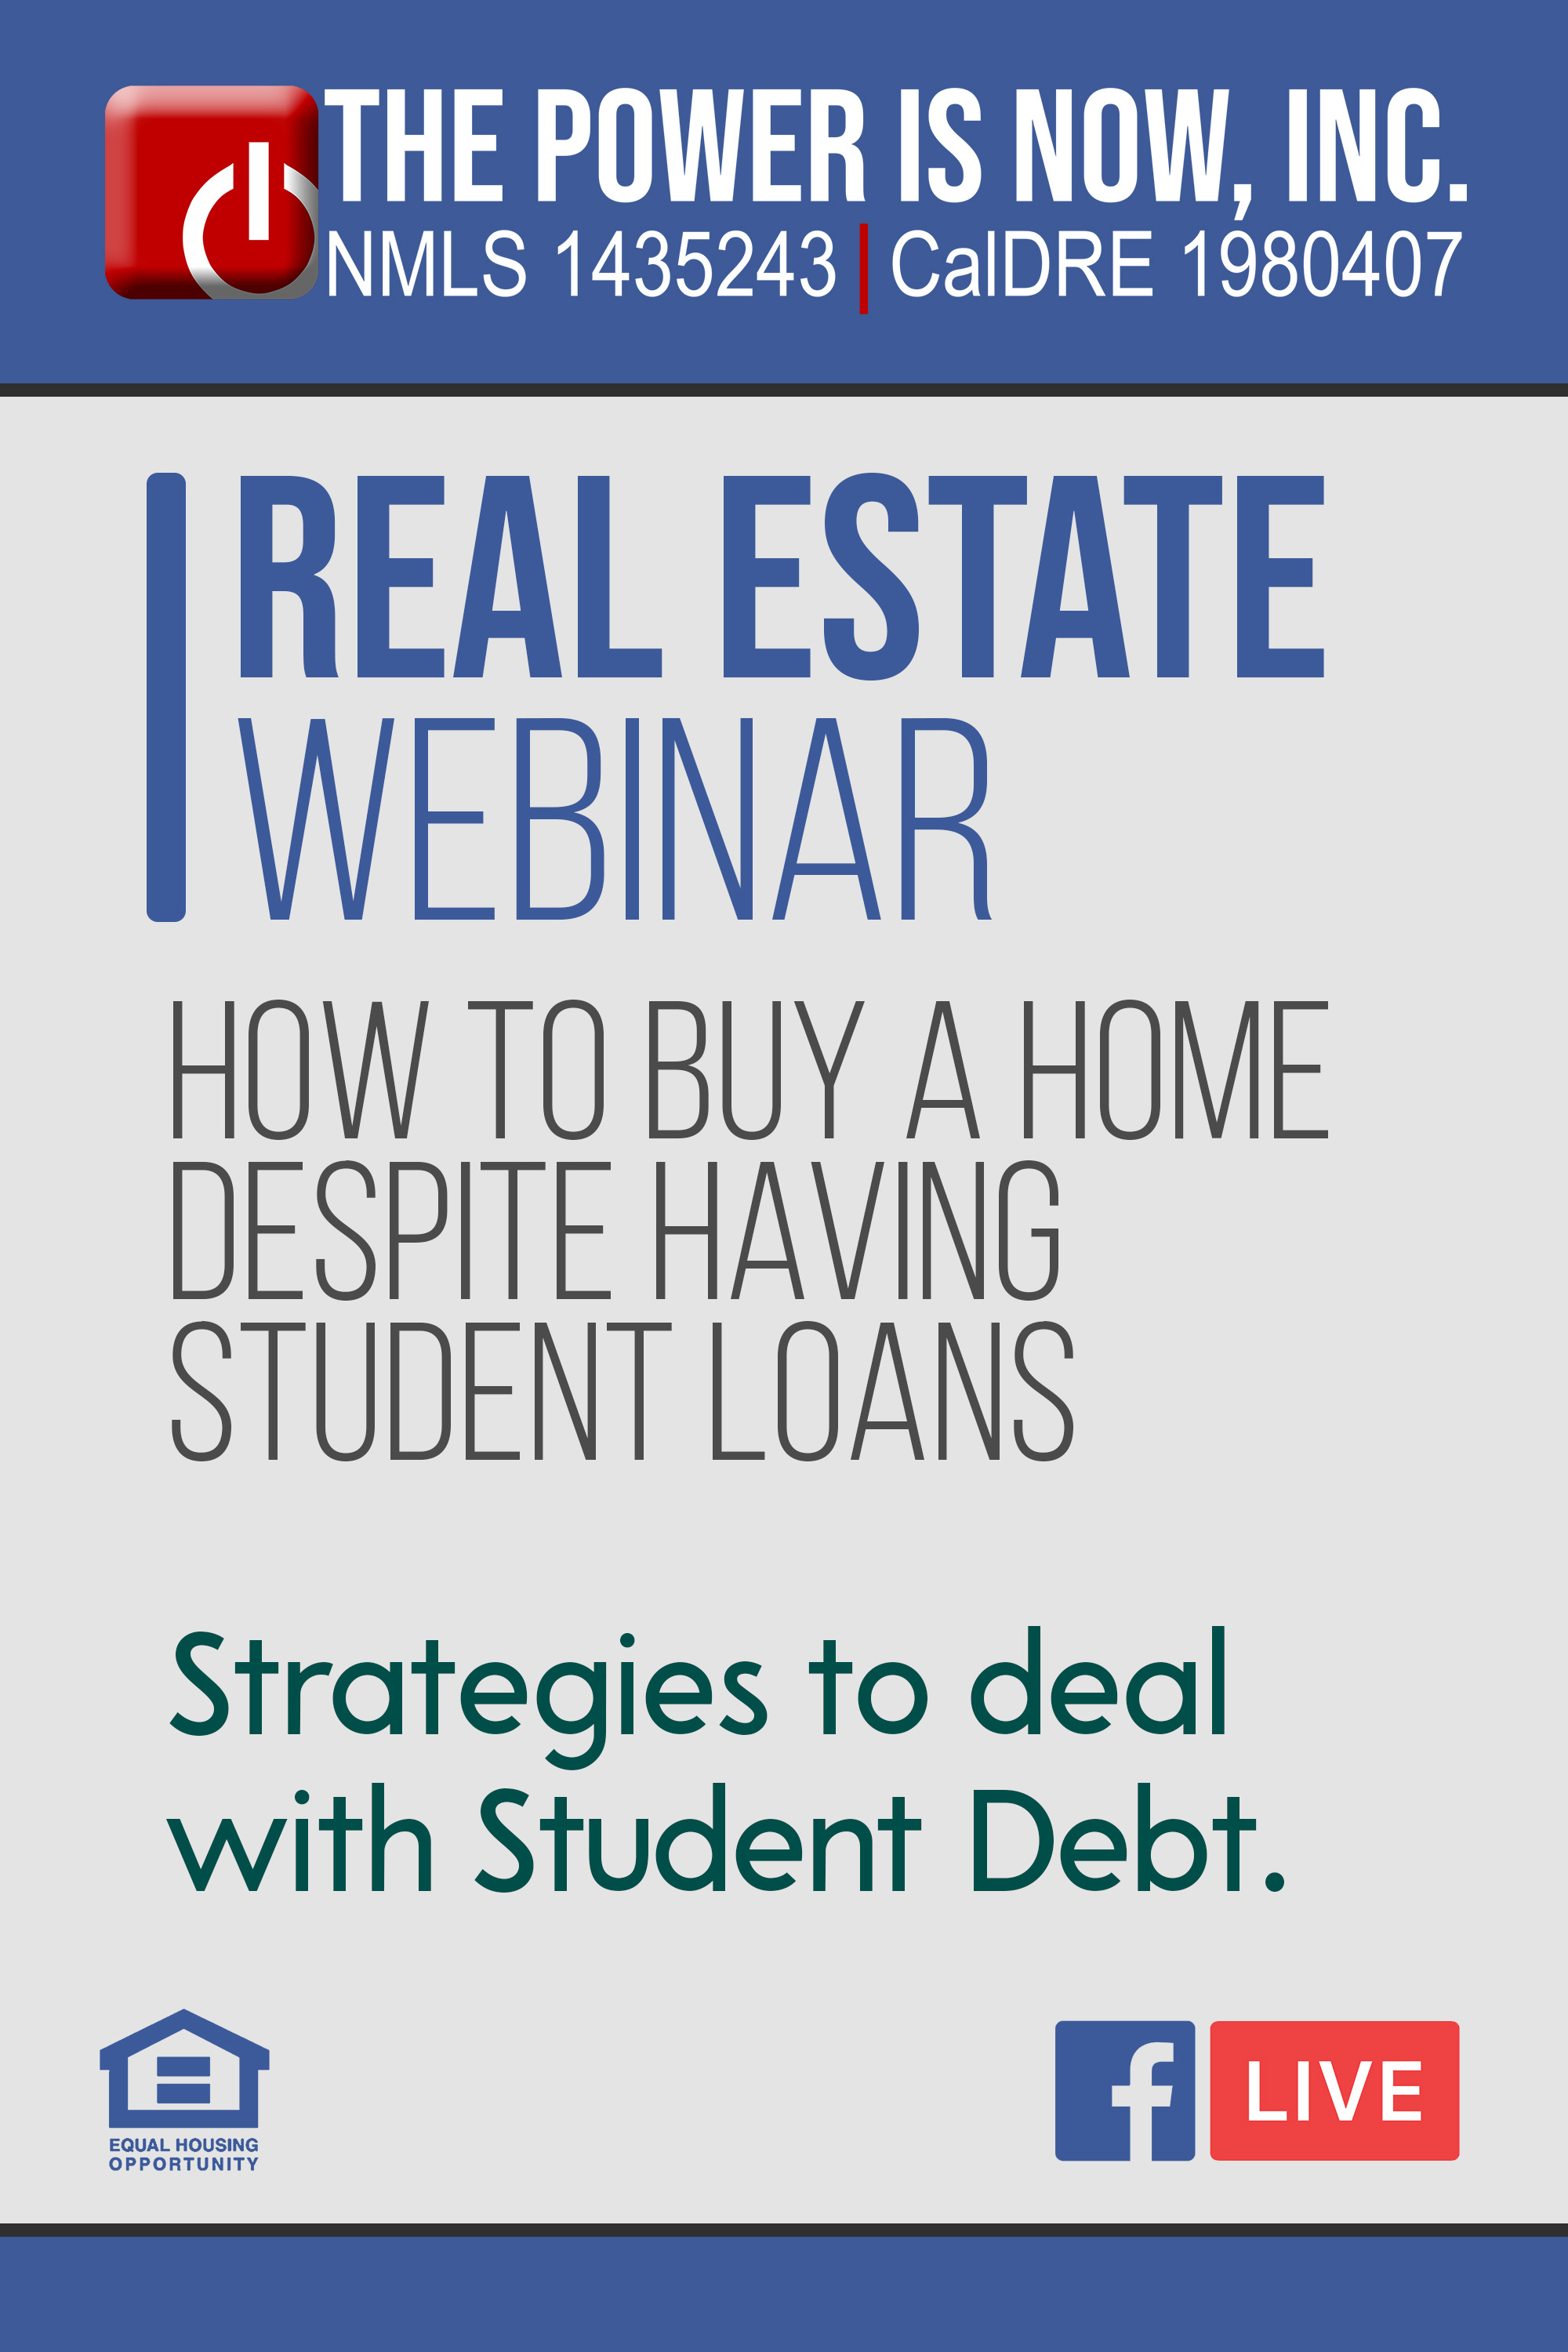 How to Buy A Home Despite Having Student Loans | Strategies to deal with Student Debt